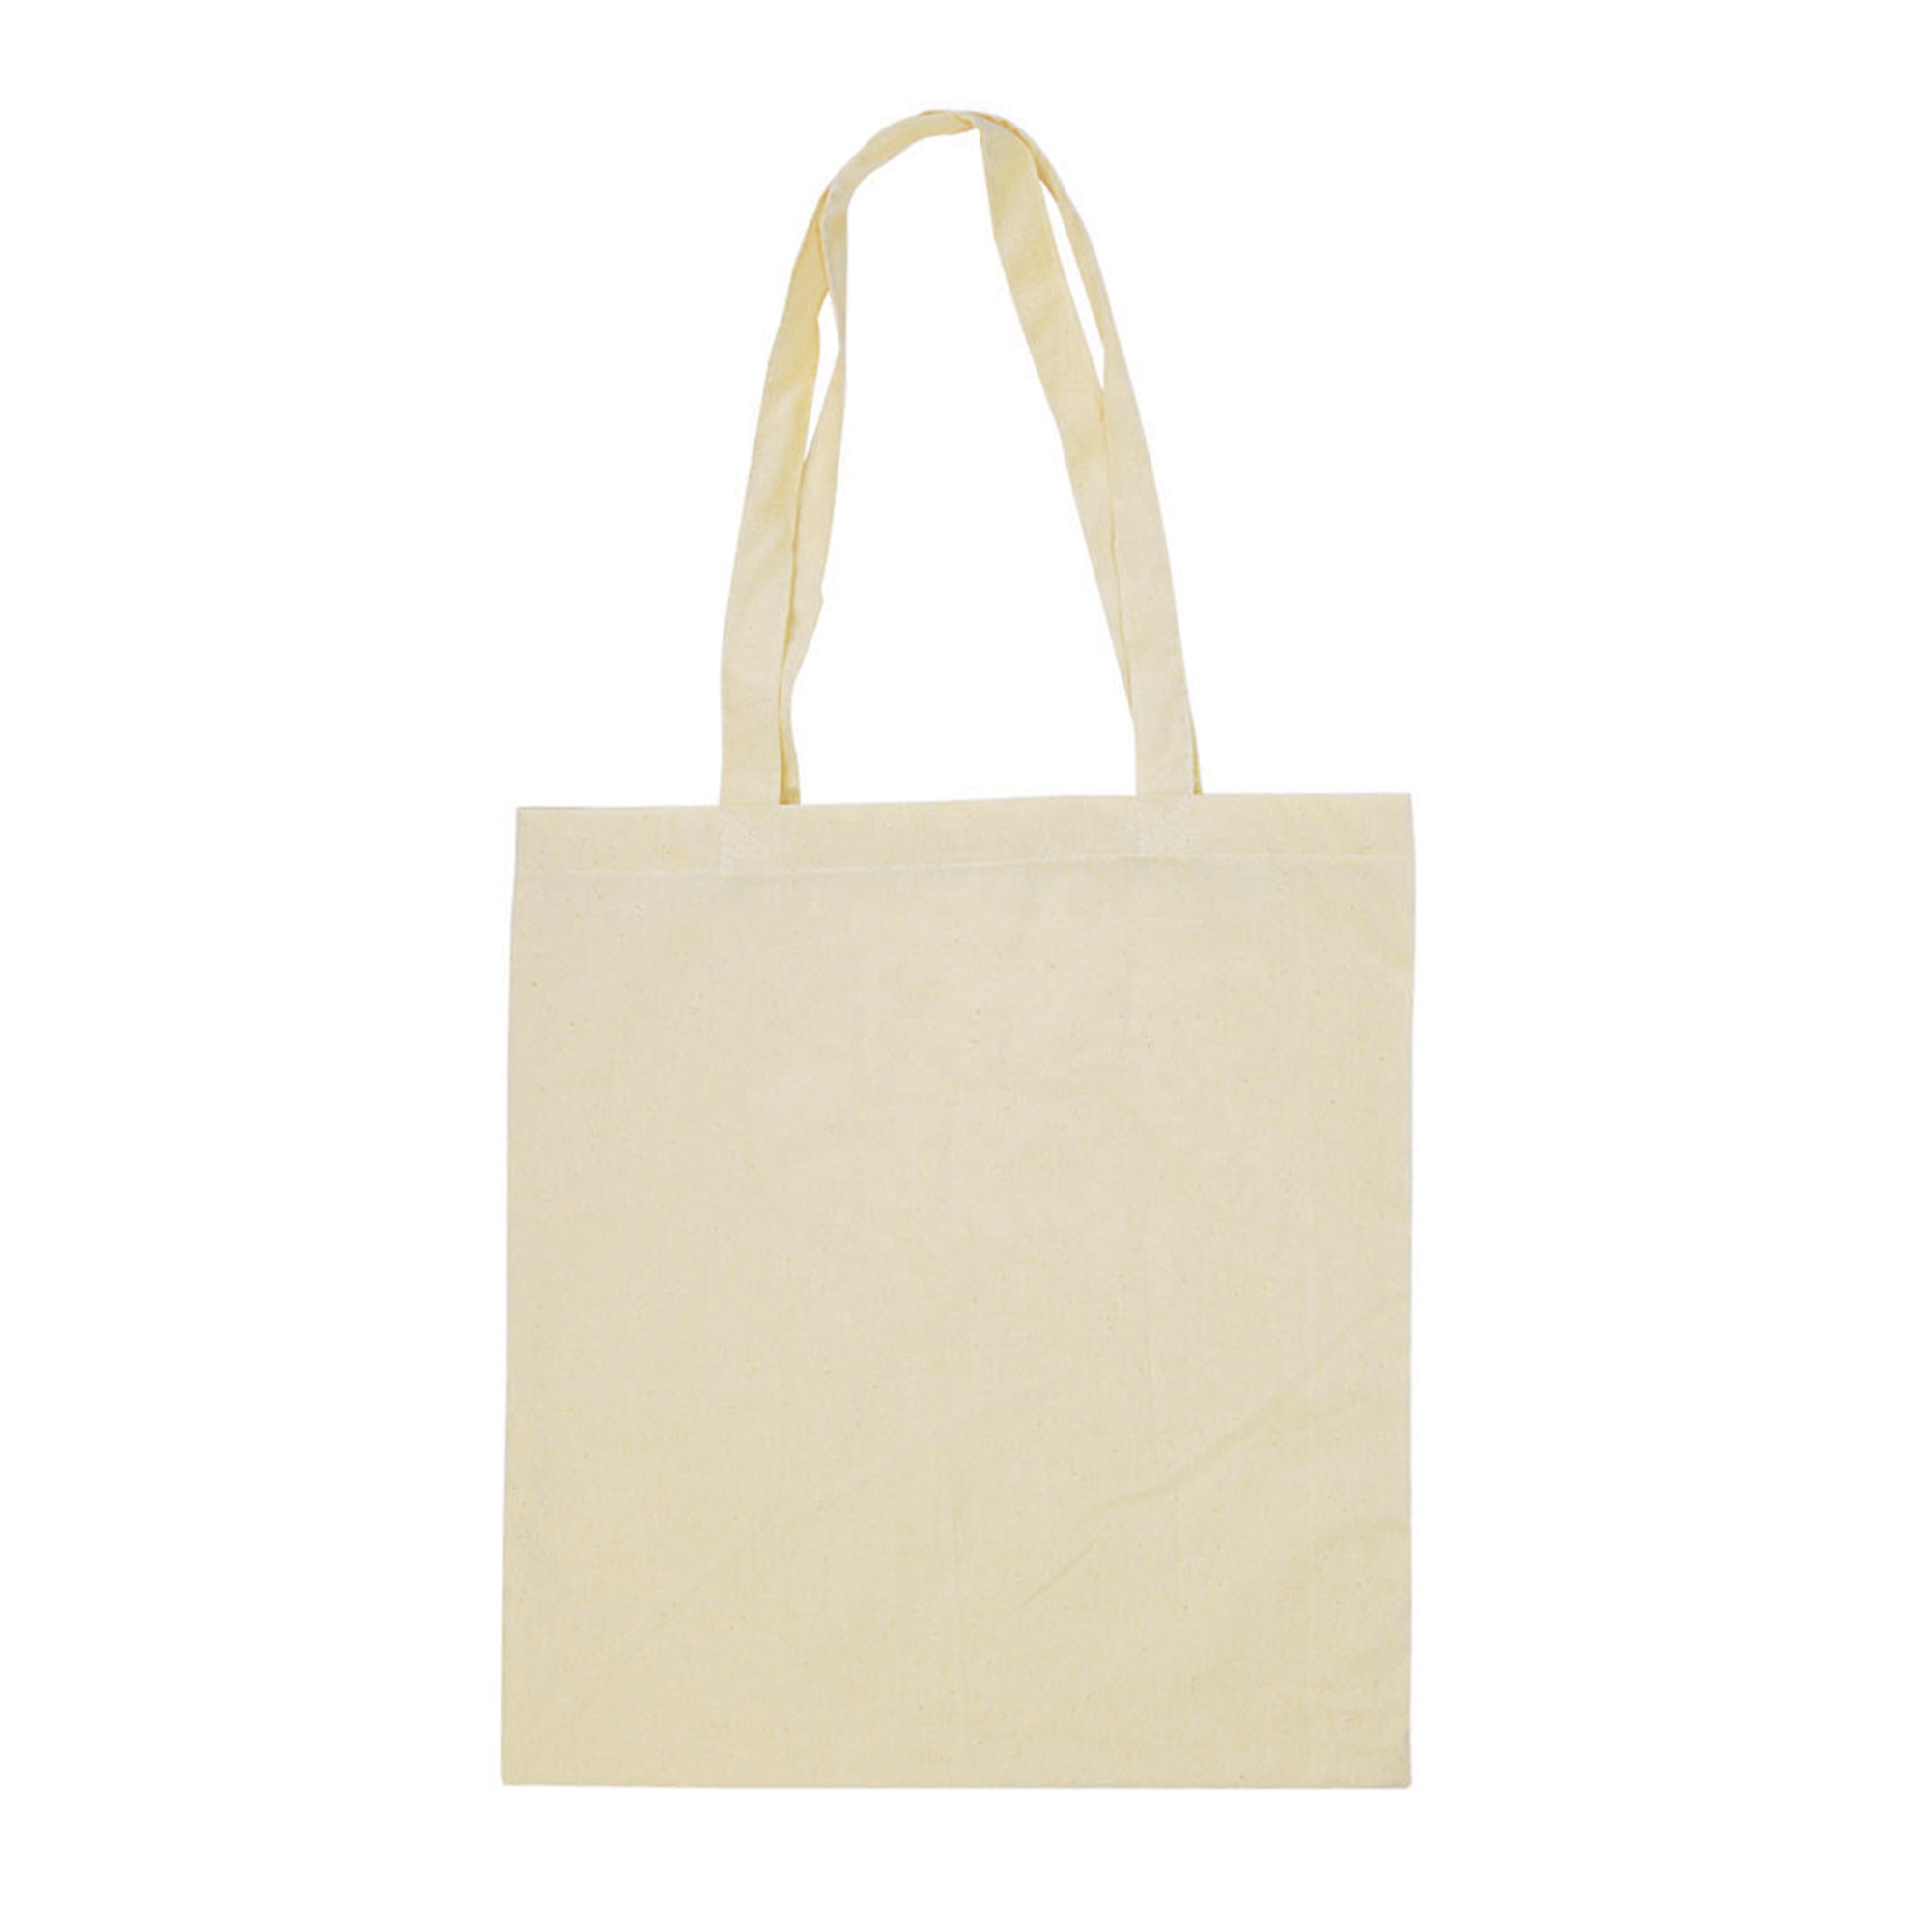 CALICO BAG NO GUSSET - 1 Colour Print, From $1.68